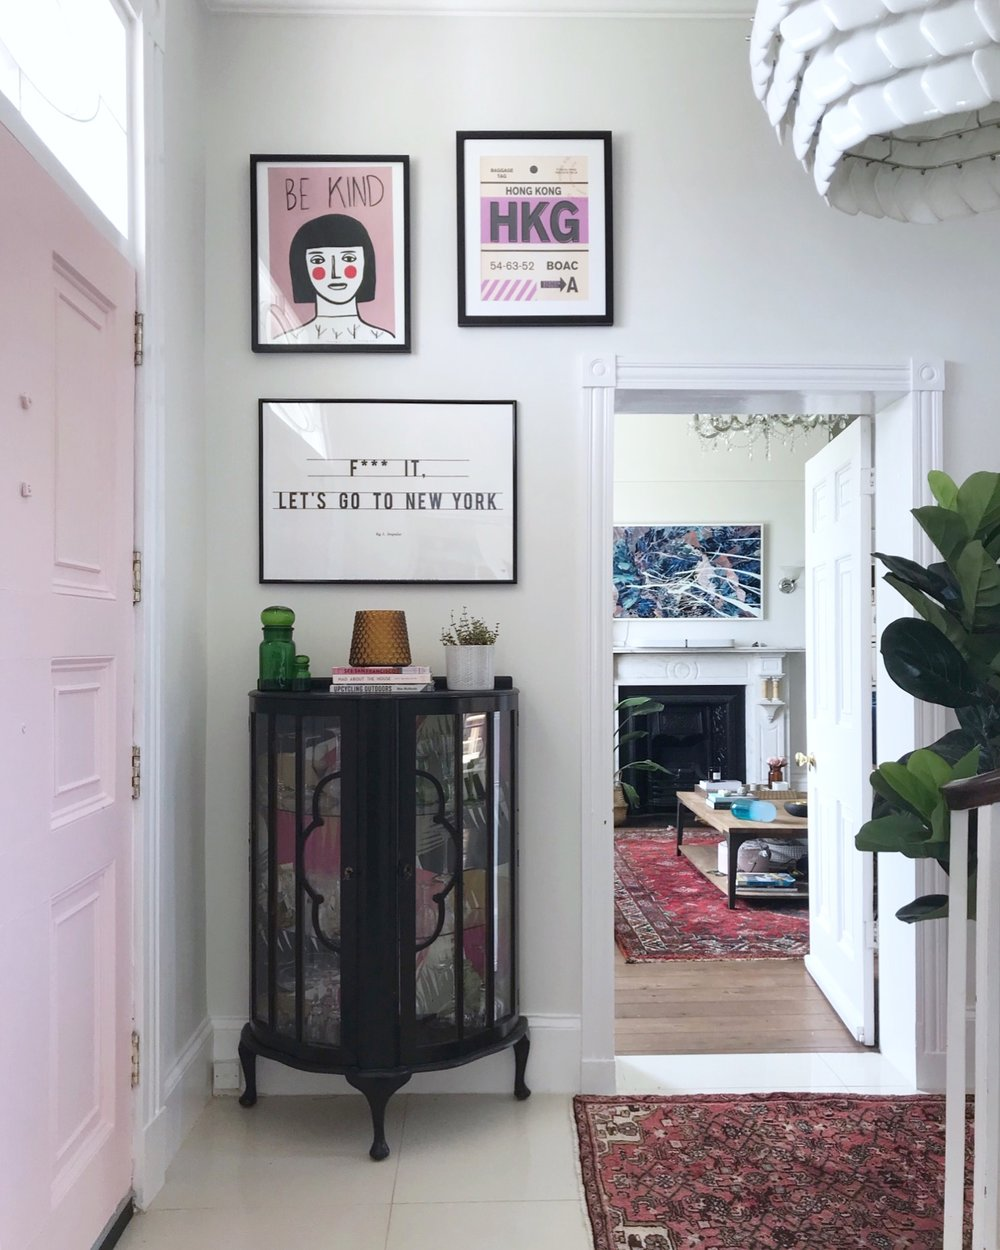 I've mixed up these frames - the  Be Kind  print is a glass fronted buy from  The Range , the  Hong Kong  print is professionally framed by  King & McGaw  and the  New York  print is a clip frame.